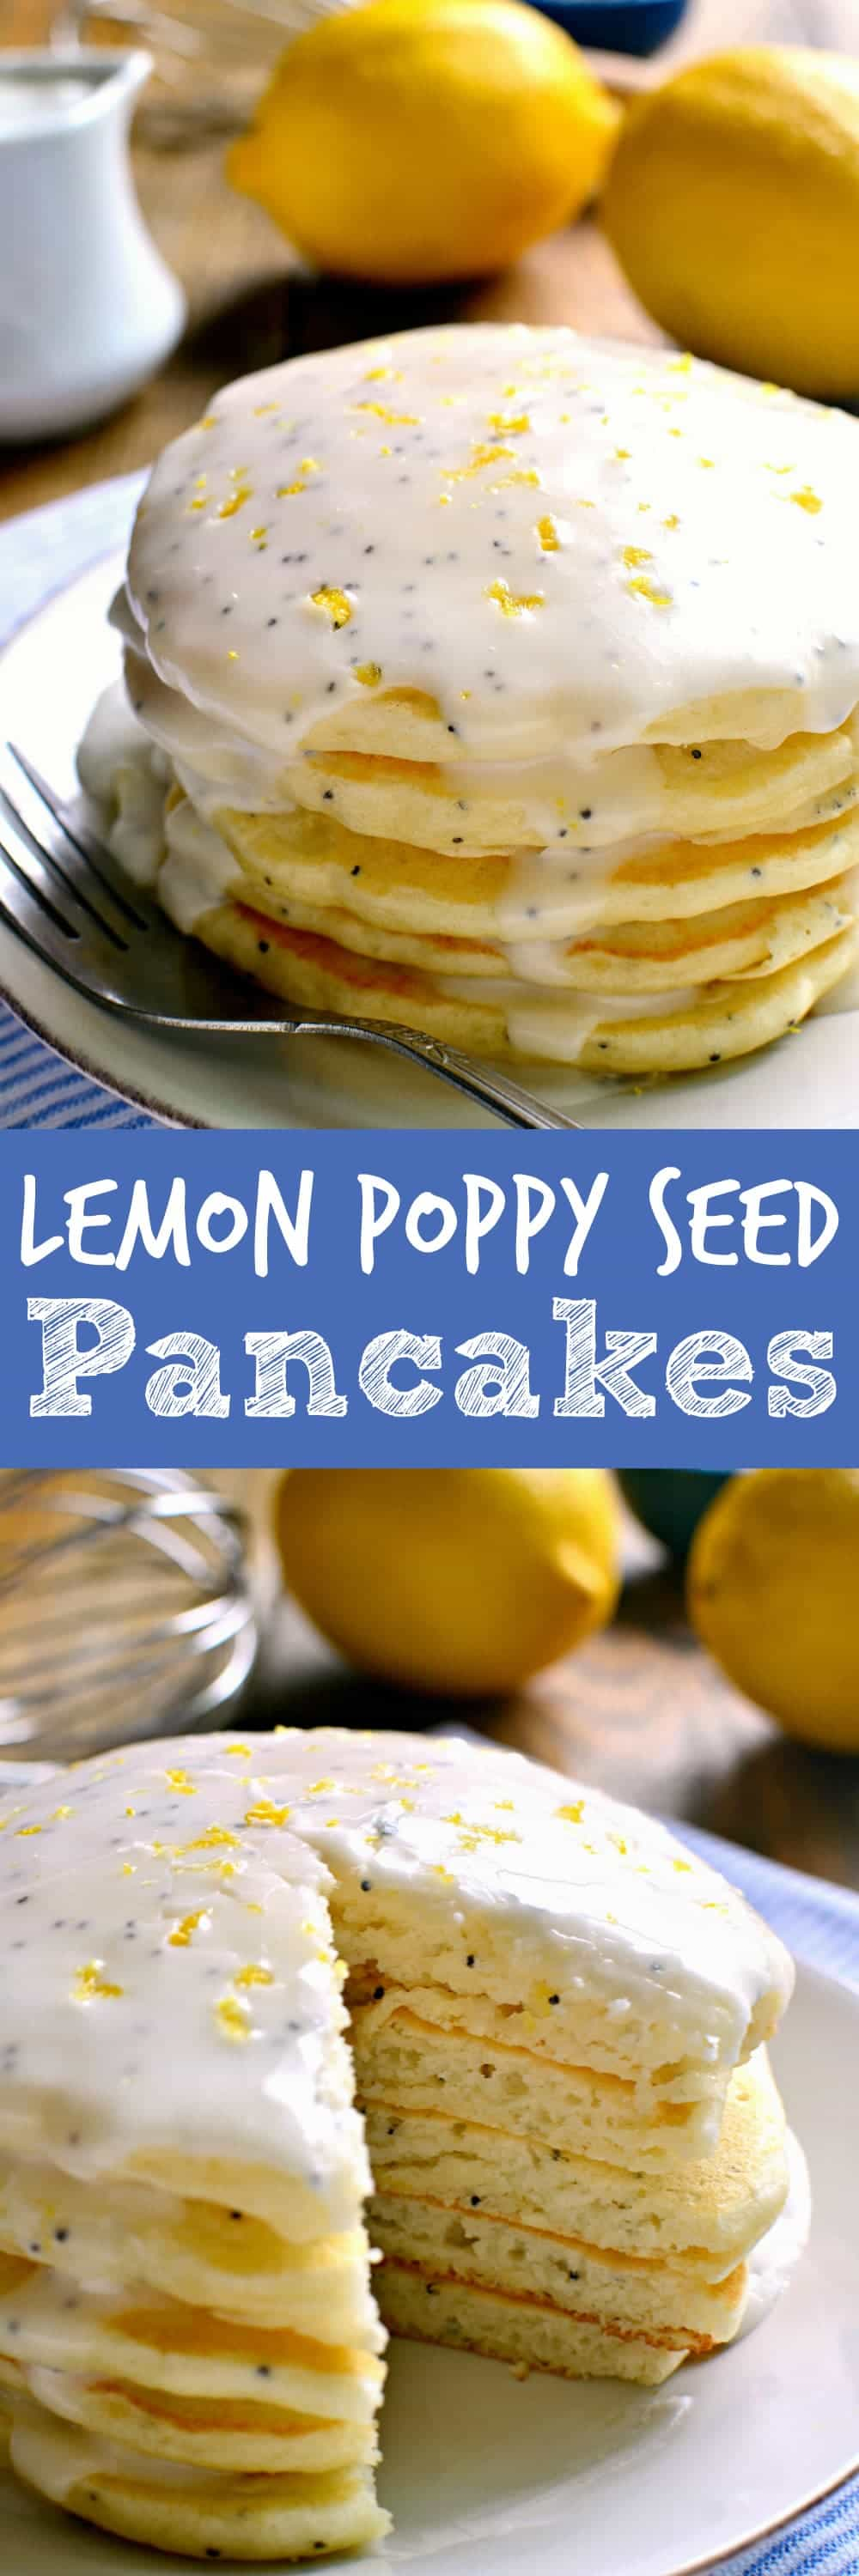 These Lemon Poppy Seed Pancakes are light, fluffy, and bursting with ...